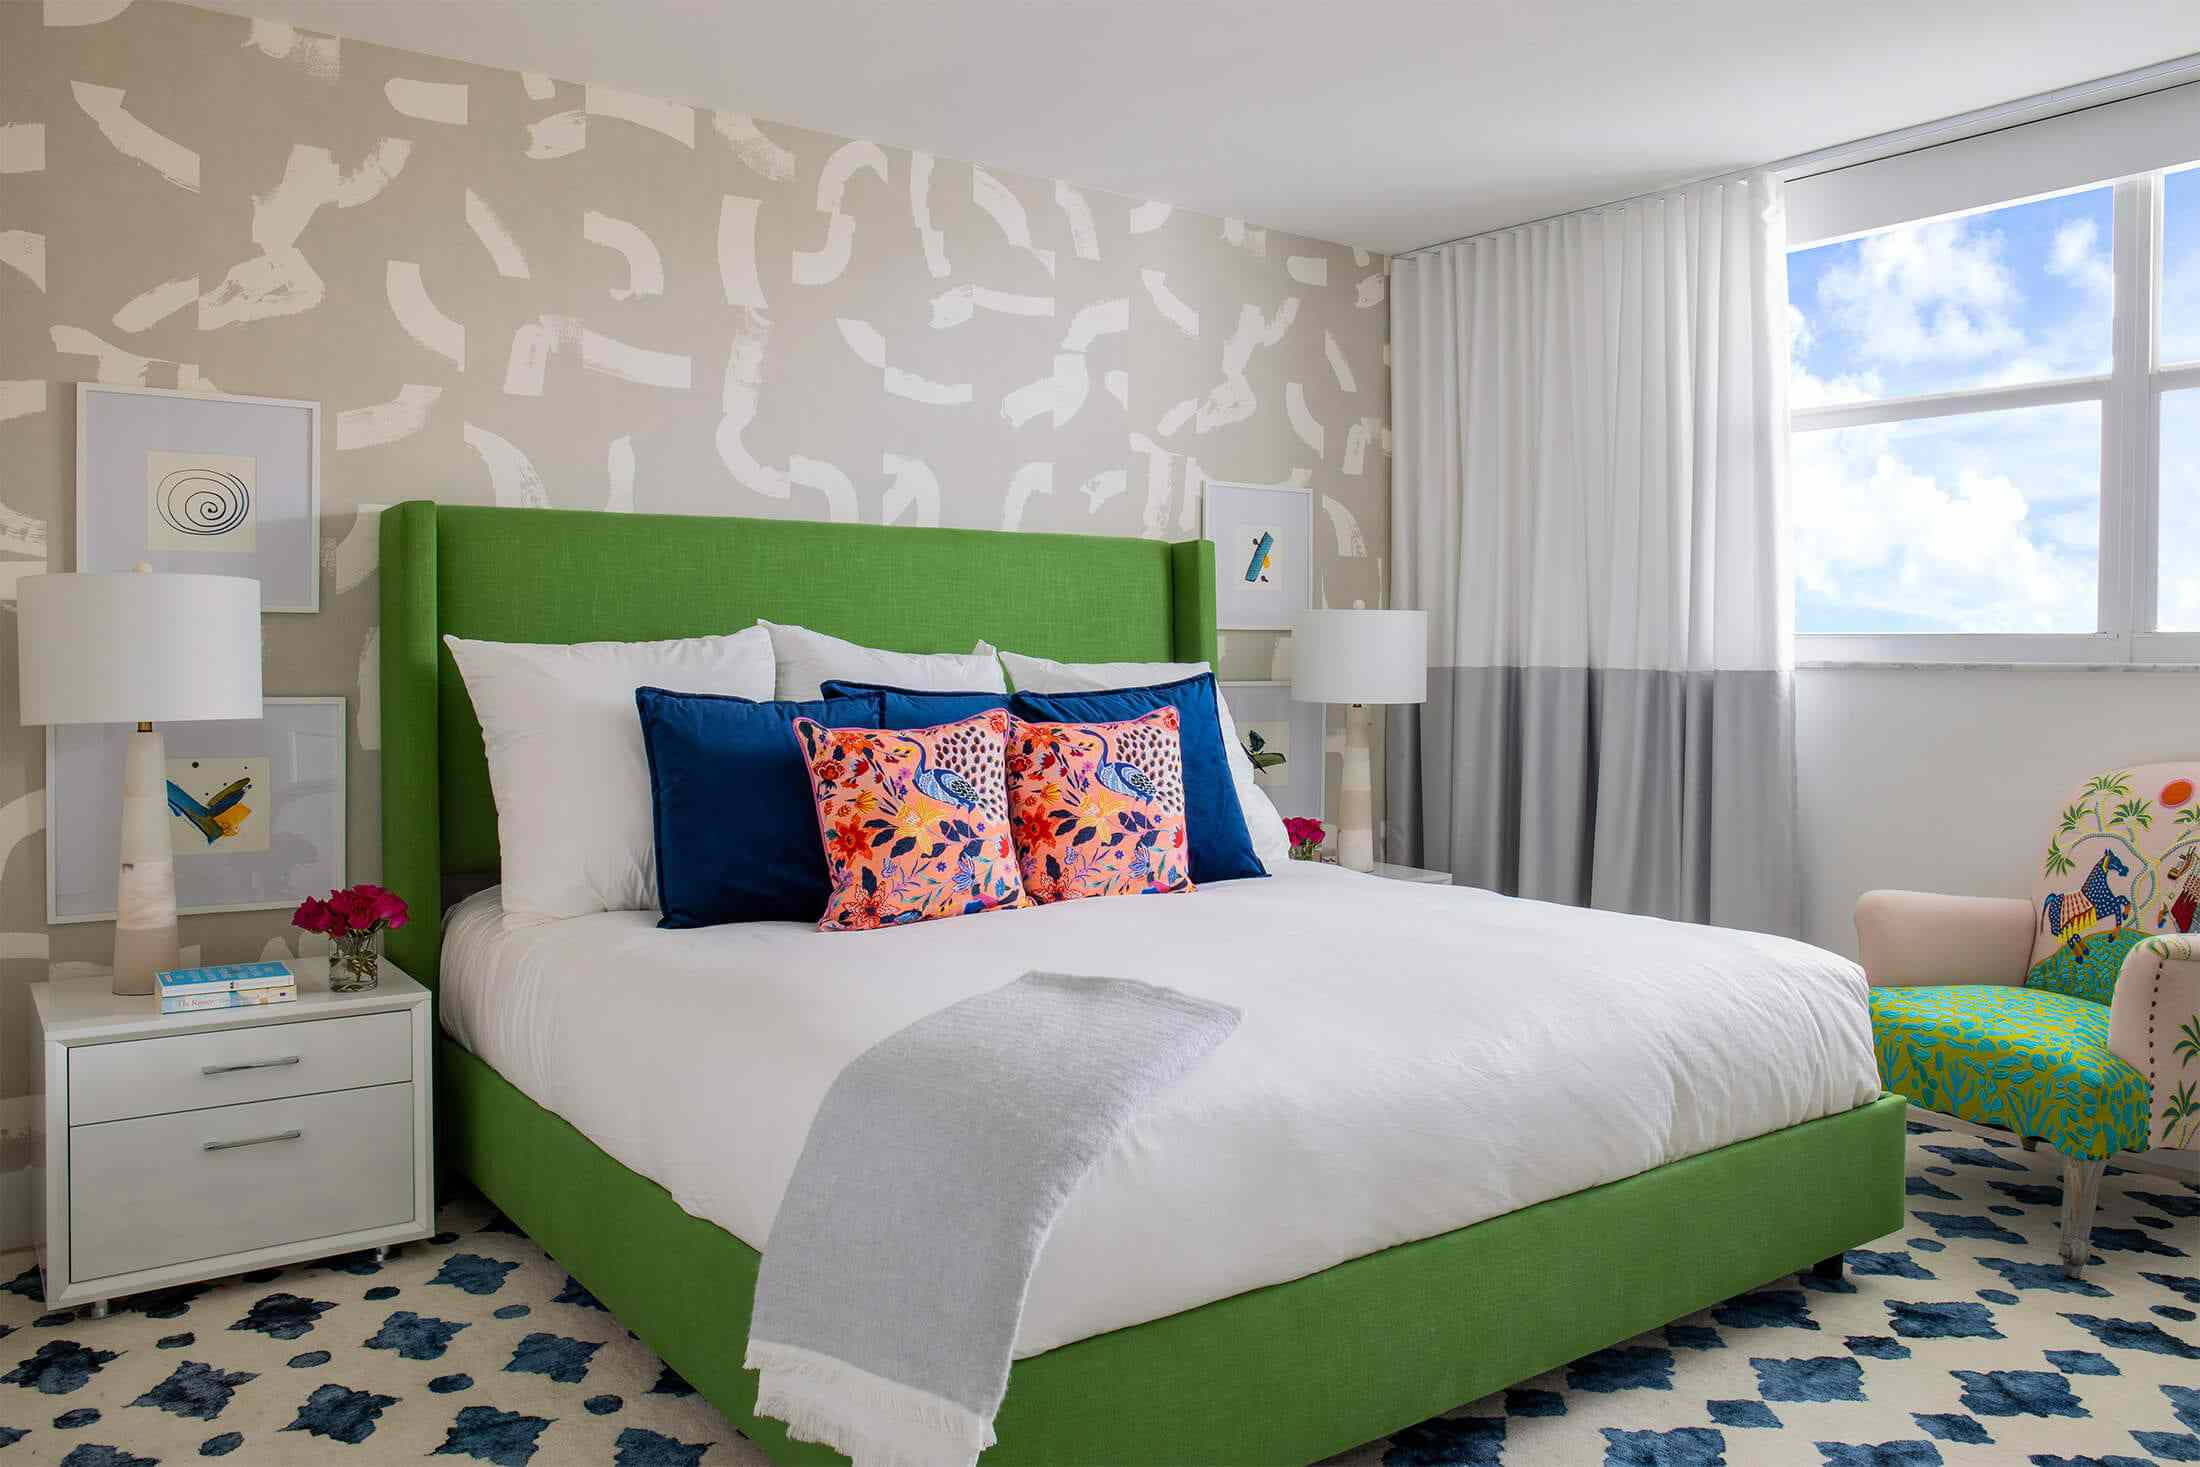 bedroom with different colors and patterns